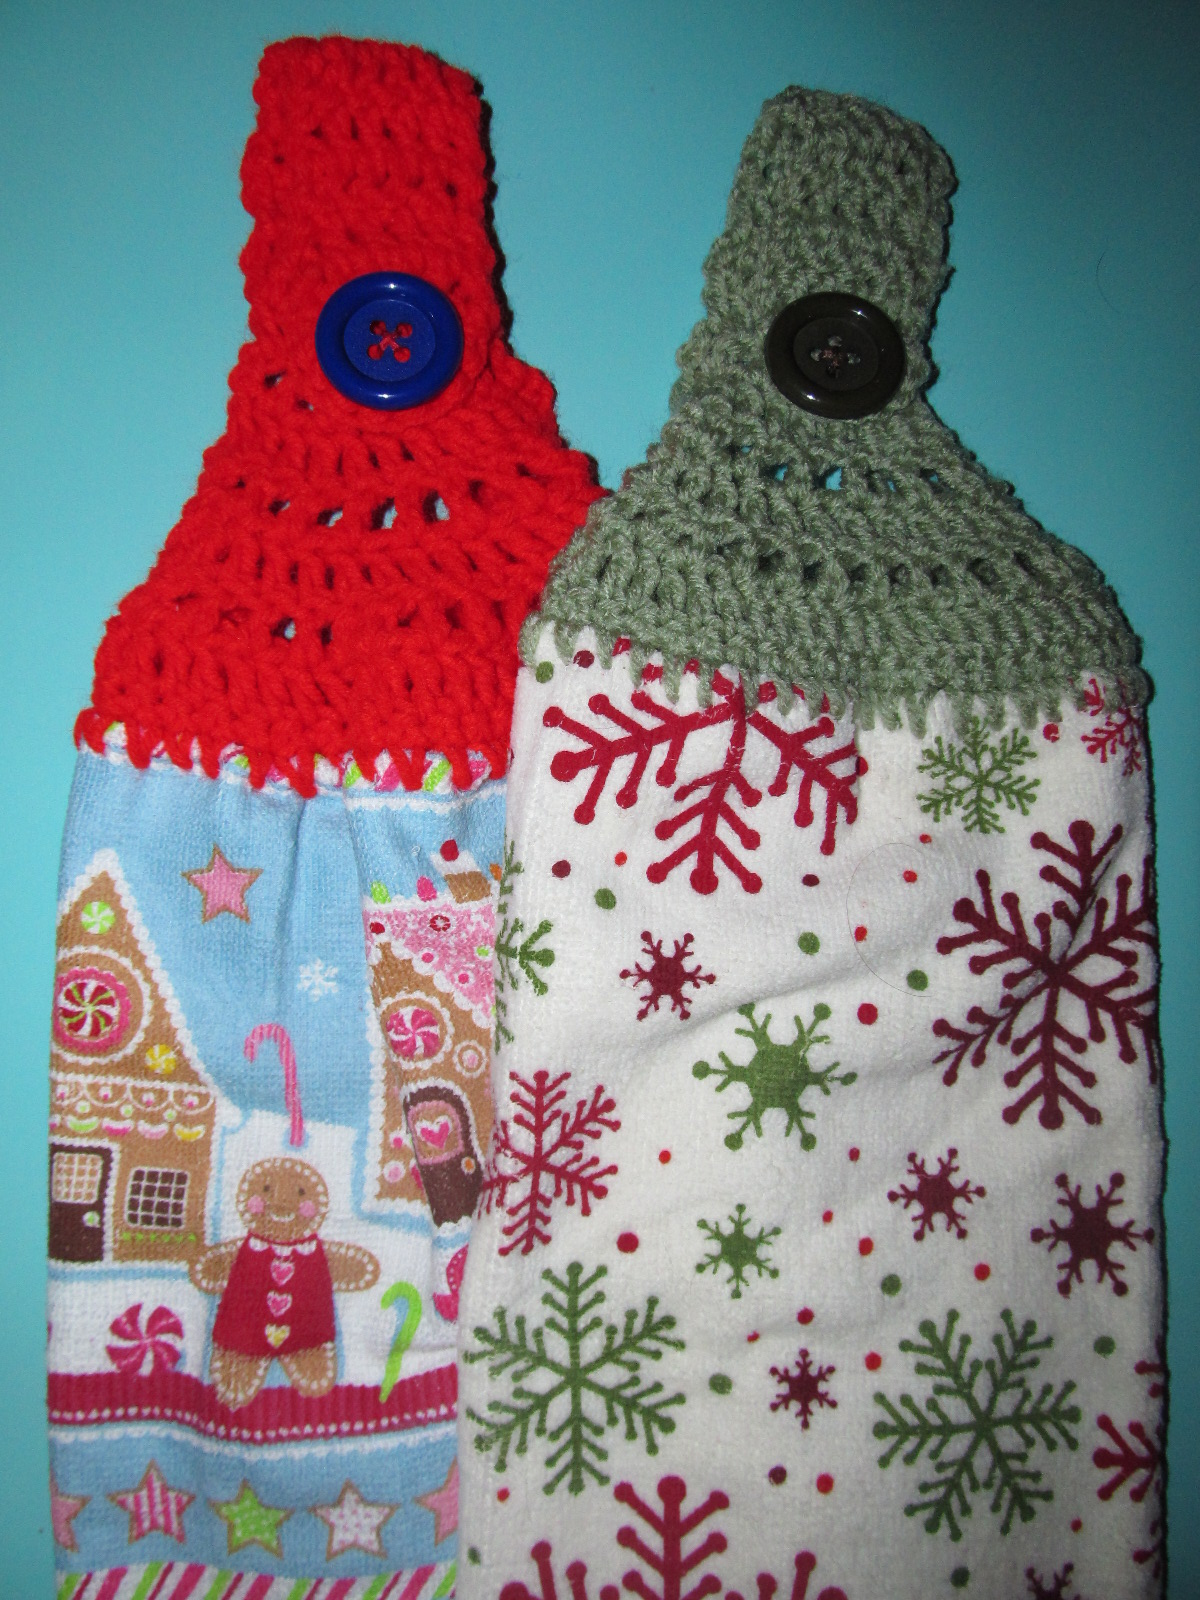 Crochet Patterns Kitchen Towels : simply crochet and other crafts towel toppers click for details towel ...